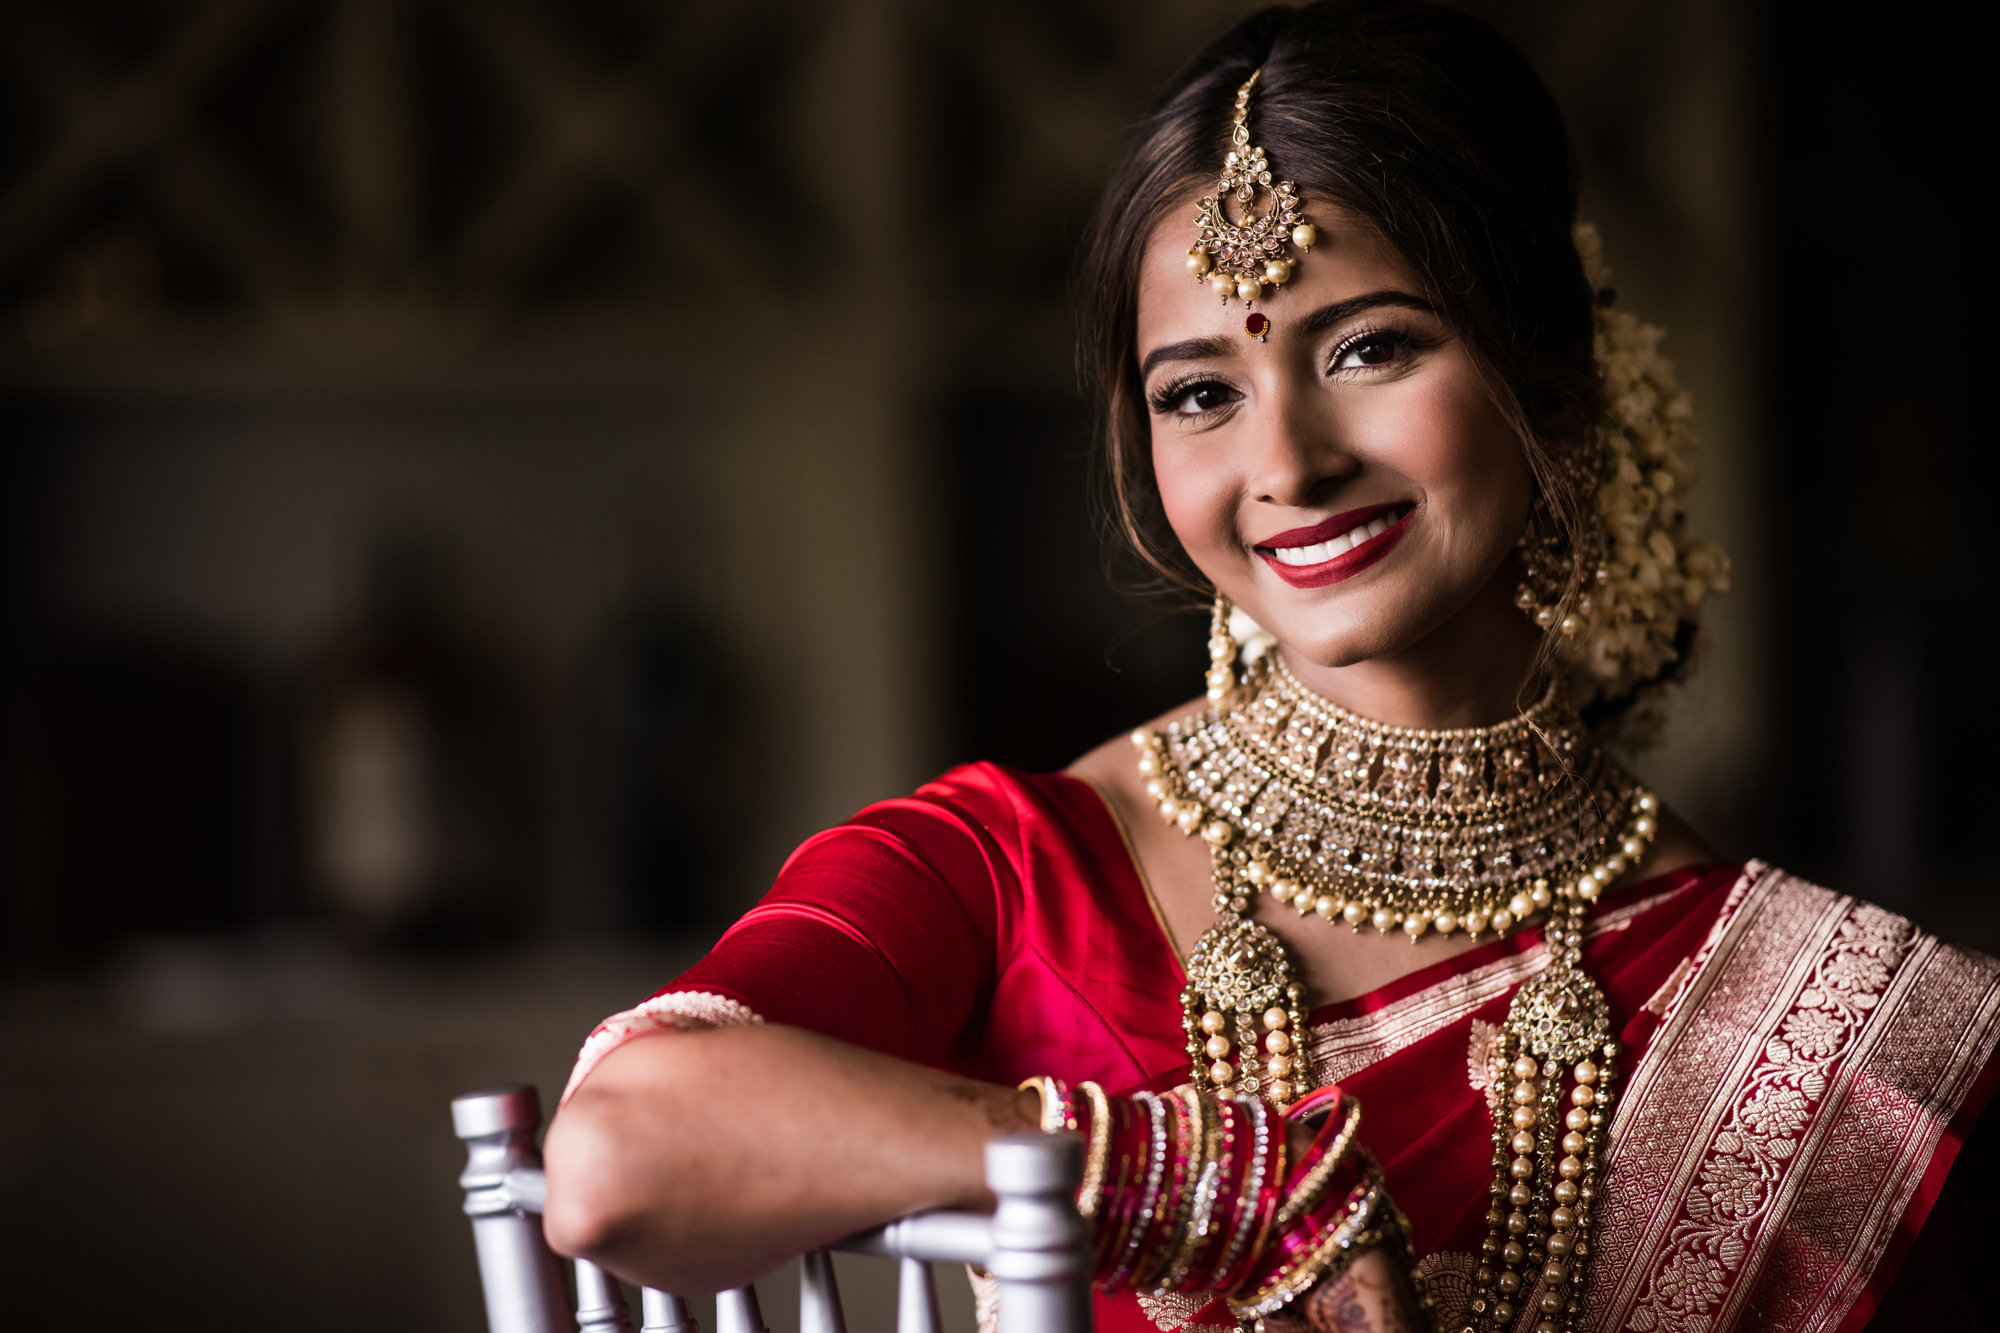 Smiling Indian bride in red traditional photo by Cliff Mautner